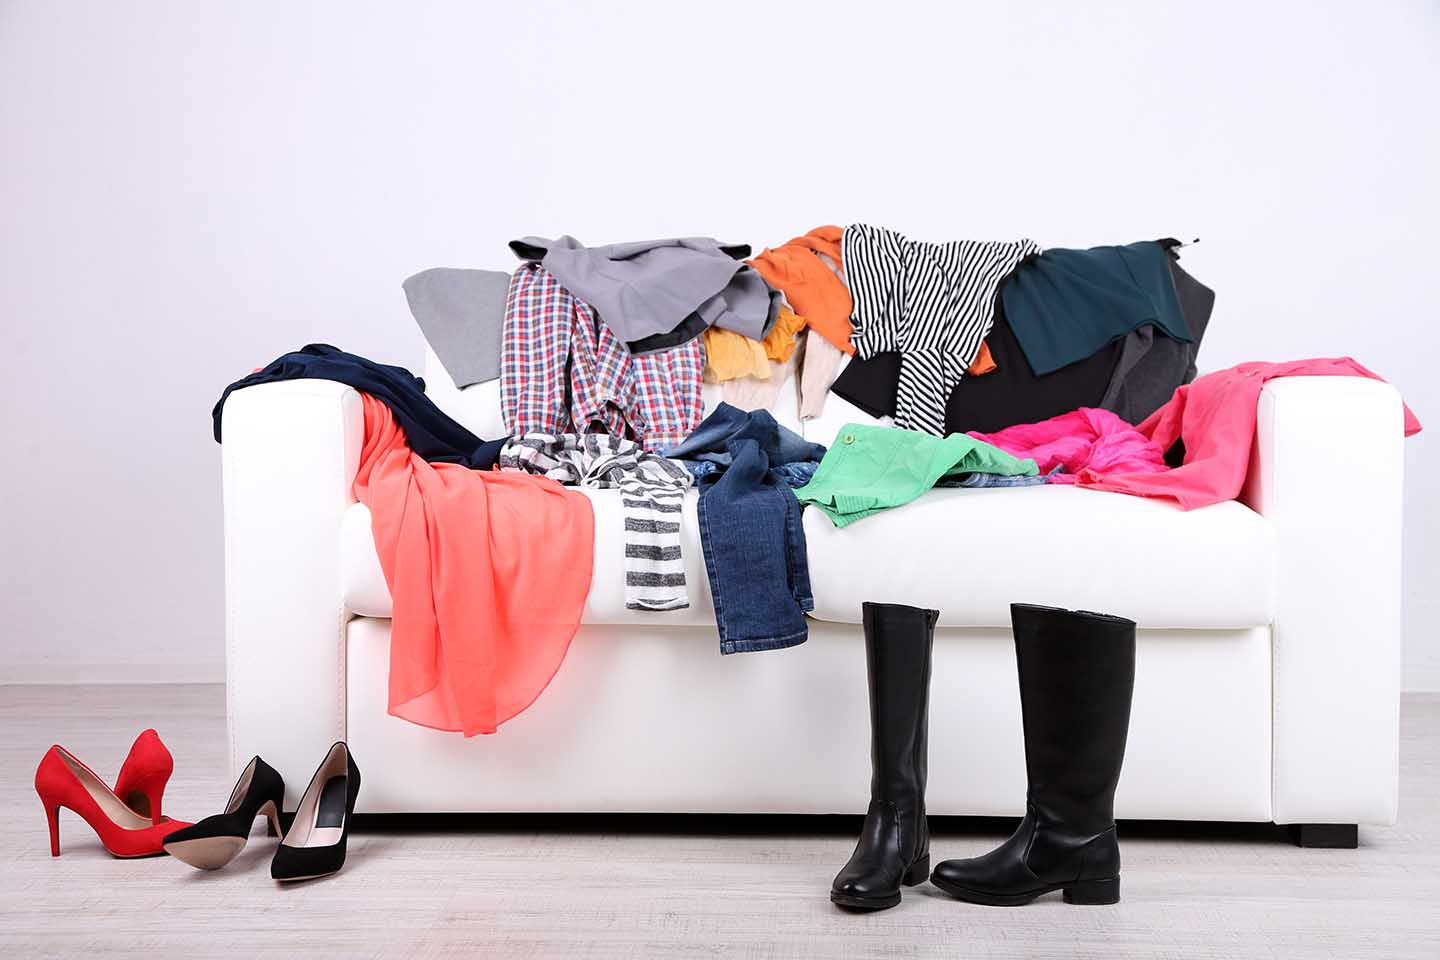 Clothing disorganized on couch